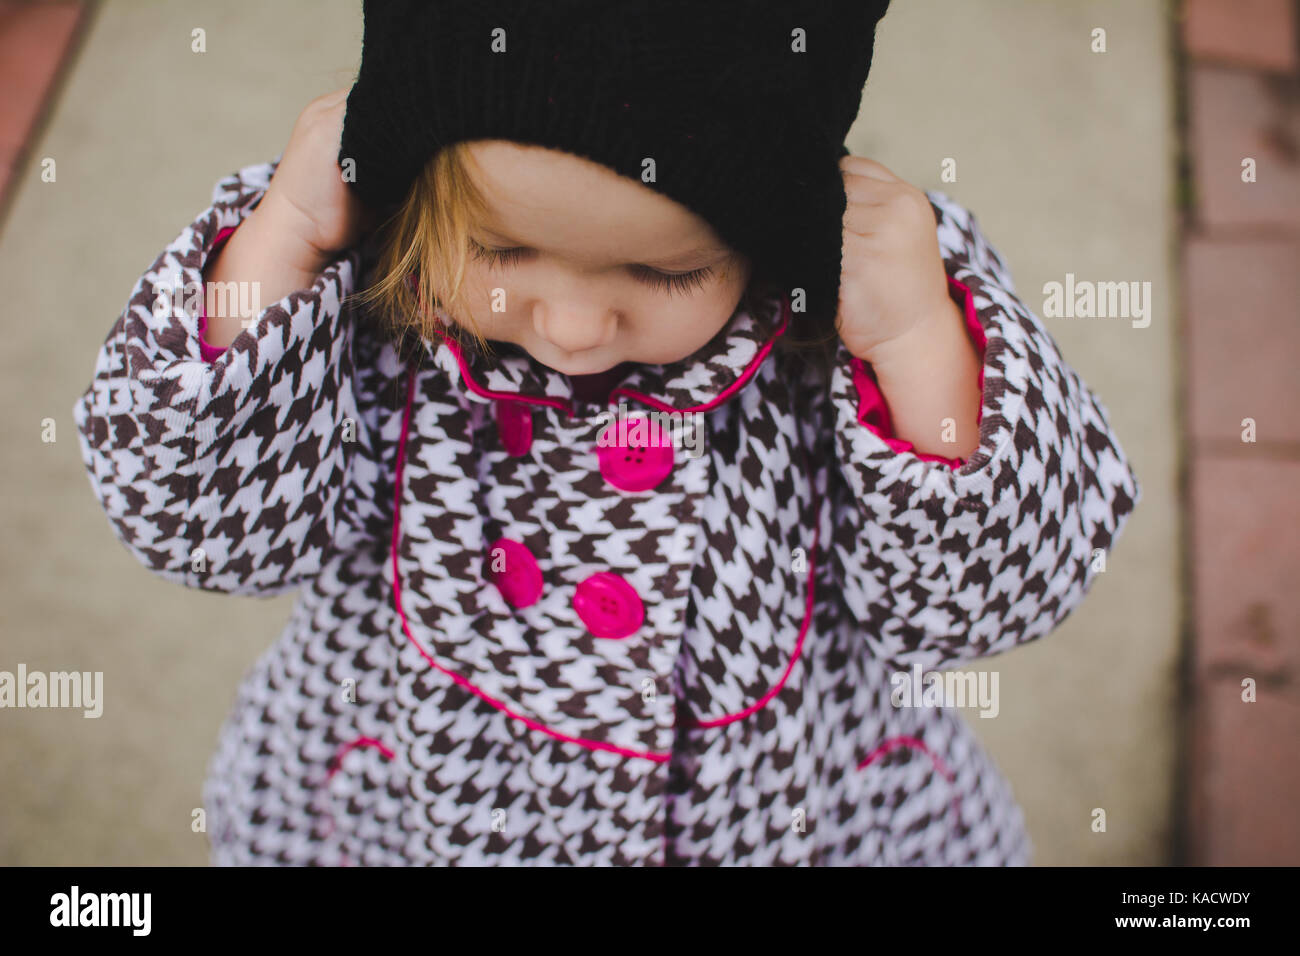 Hat Stock Photos Images Alamy Winter Wh 97 A Toddler Adjusting Her Knit Image